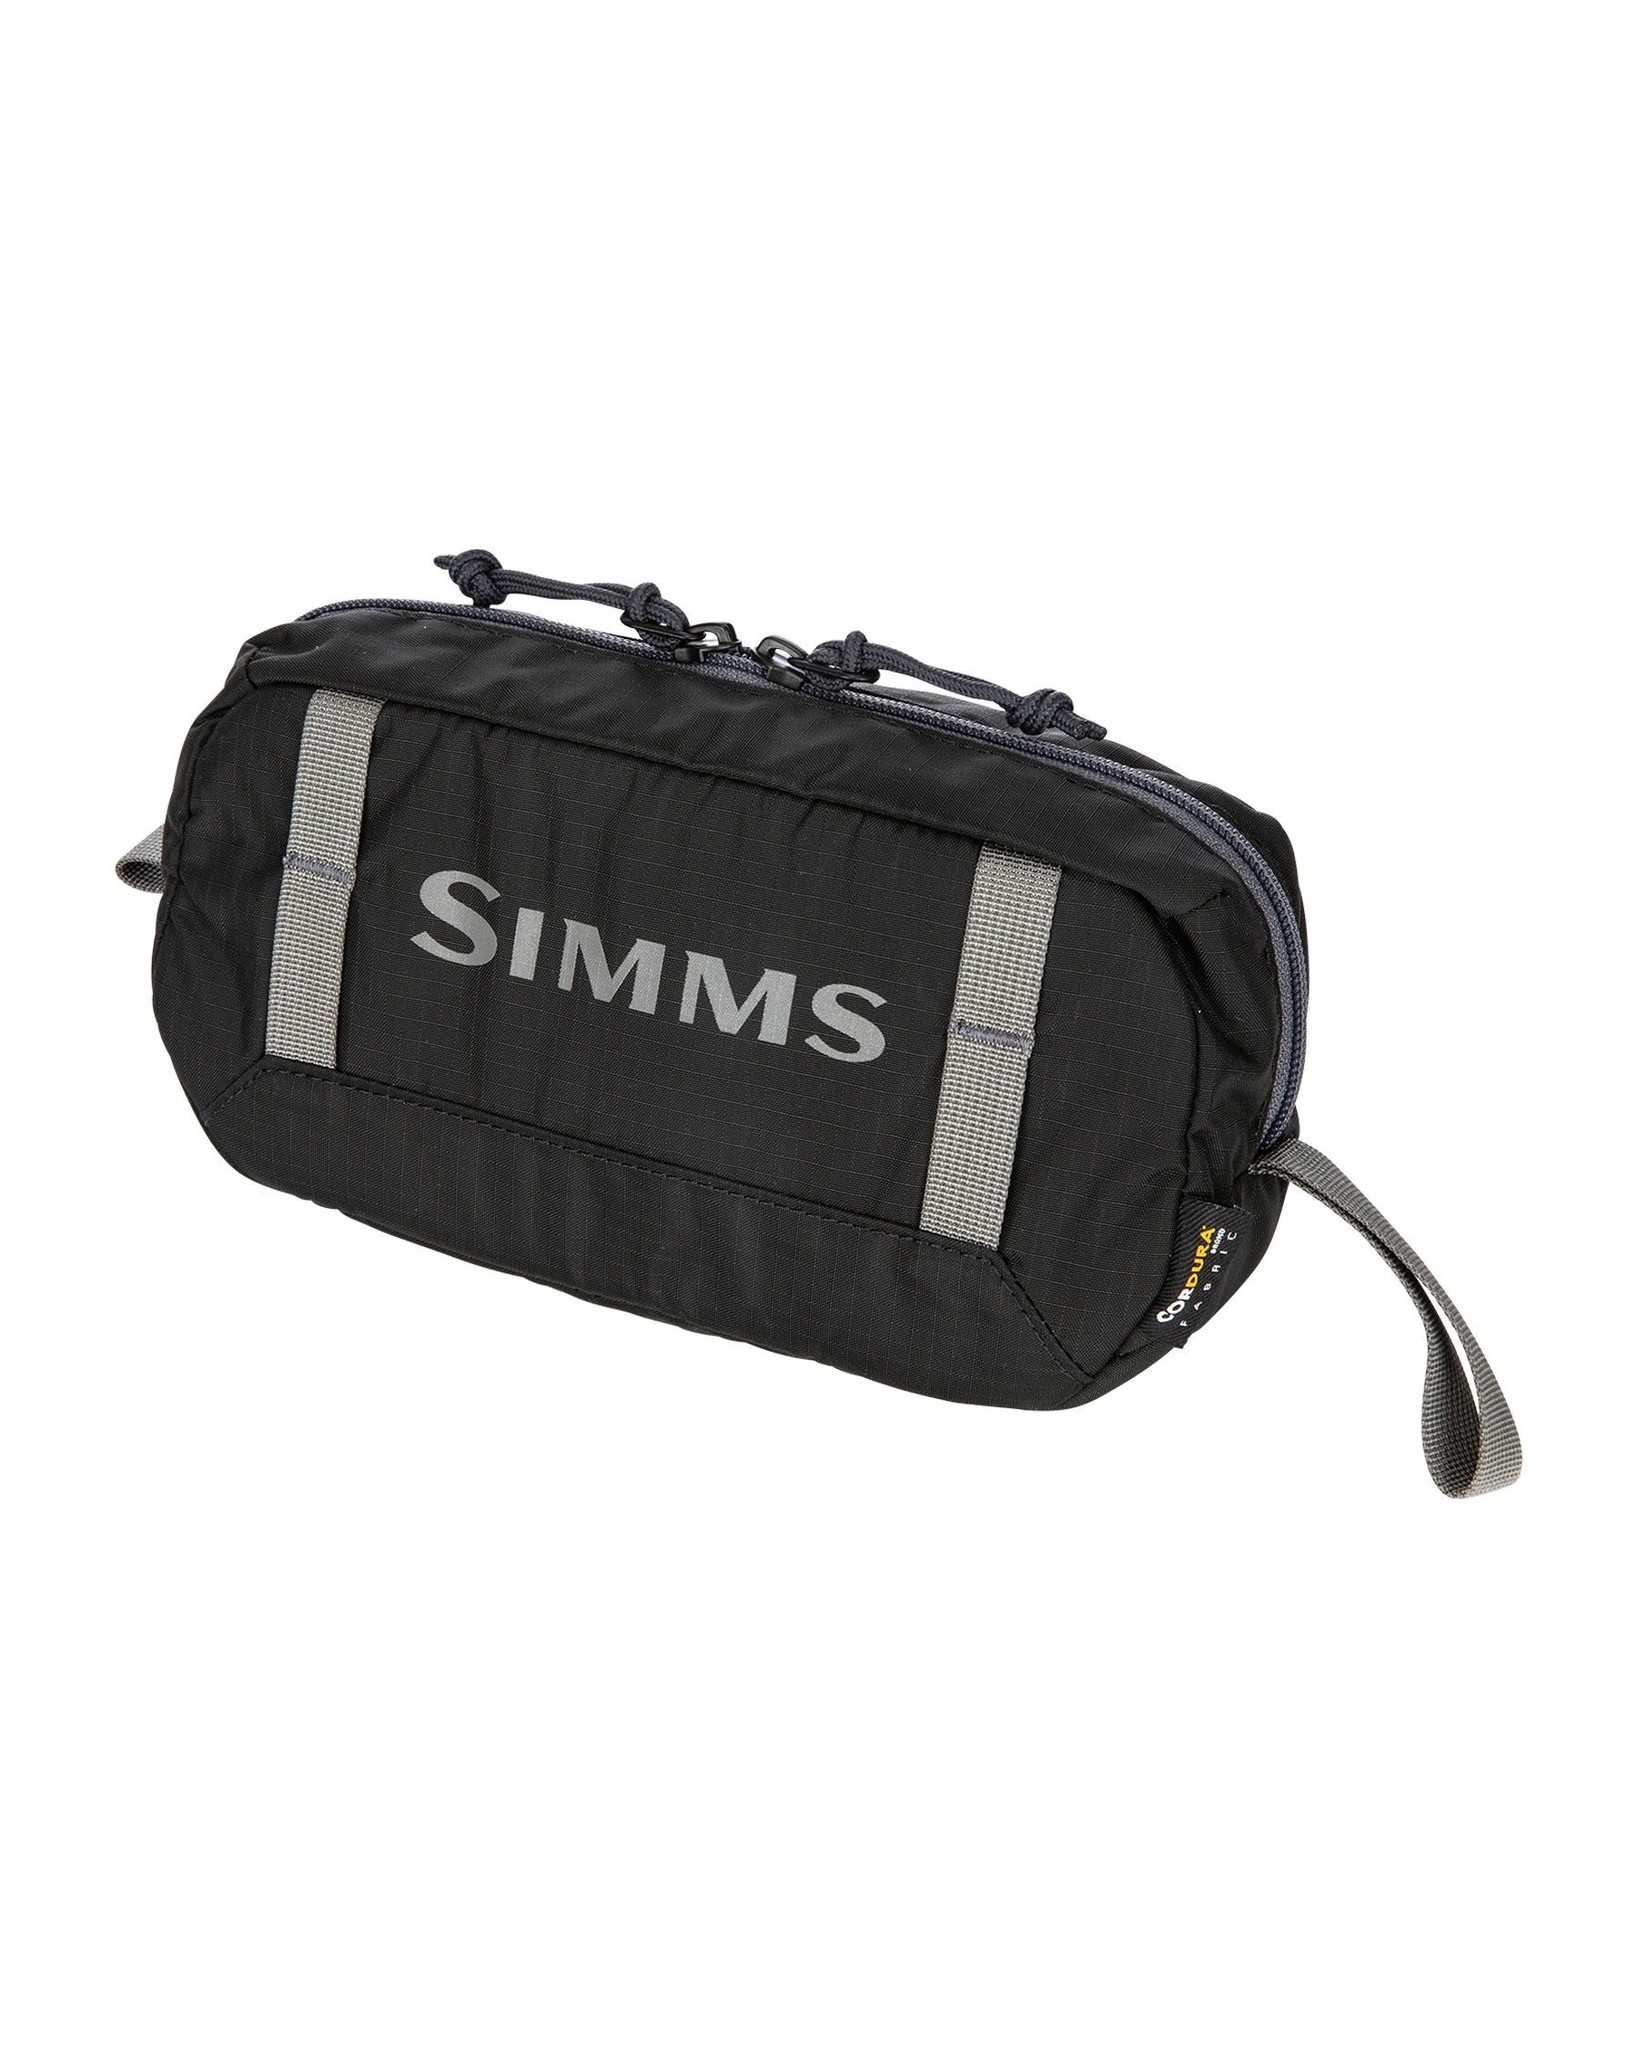 SIMMS SIMMS GTS  PADDED CUBE  - SMALL